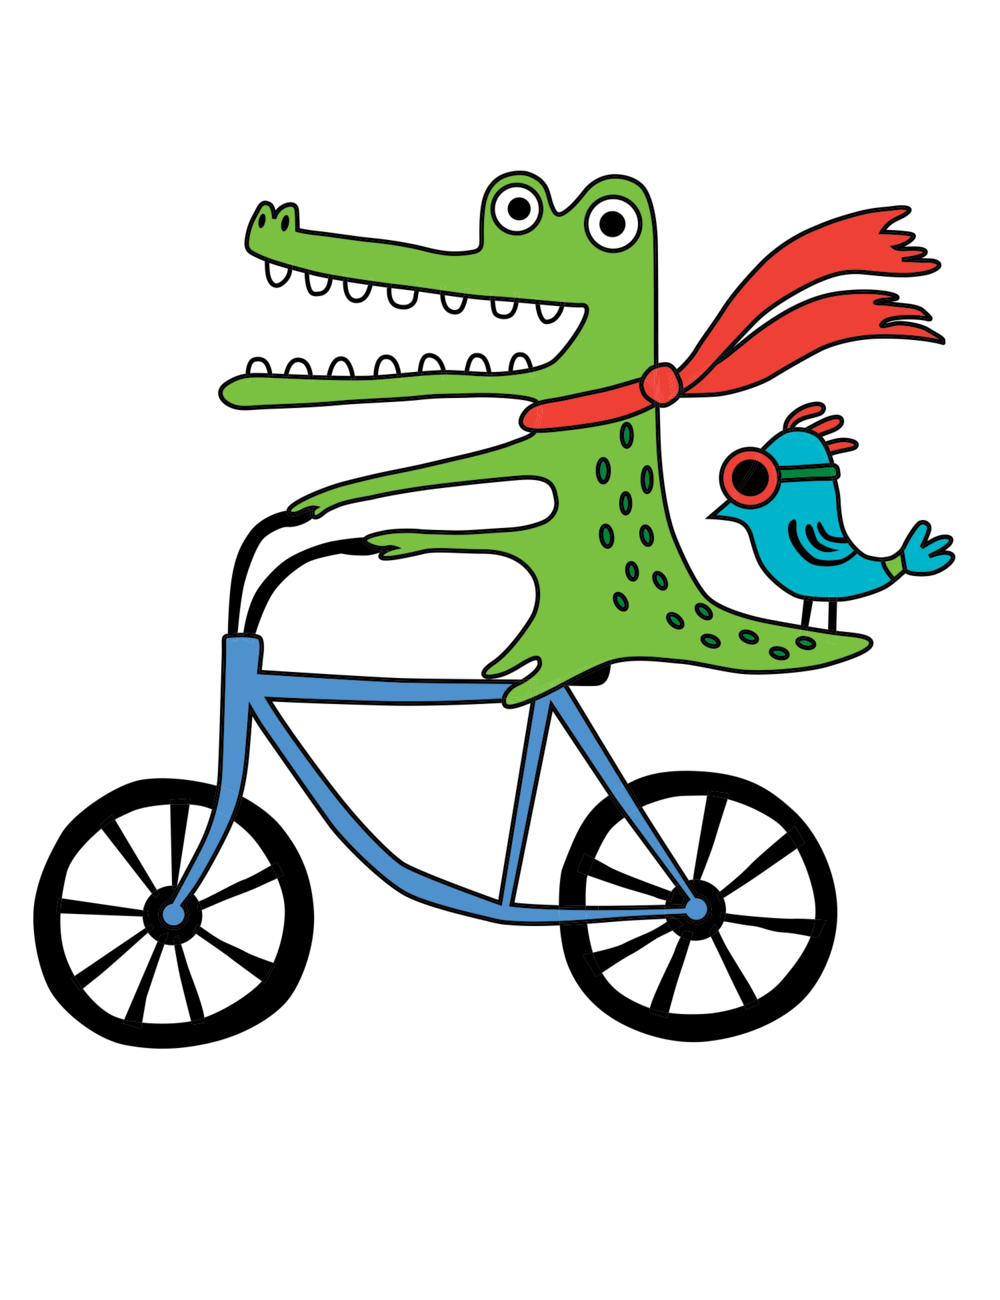 crocodile_on_bike_alligator_andi_bird.png